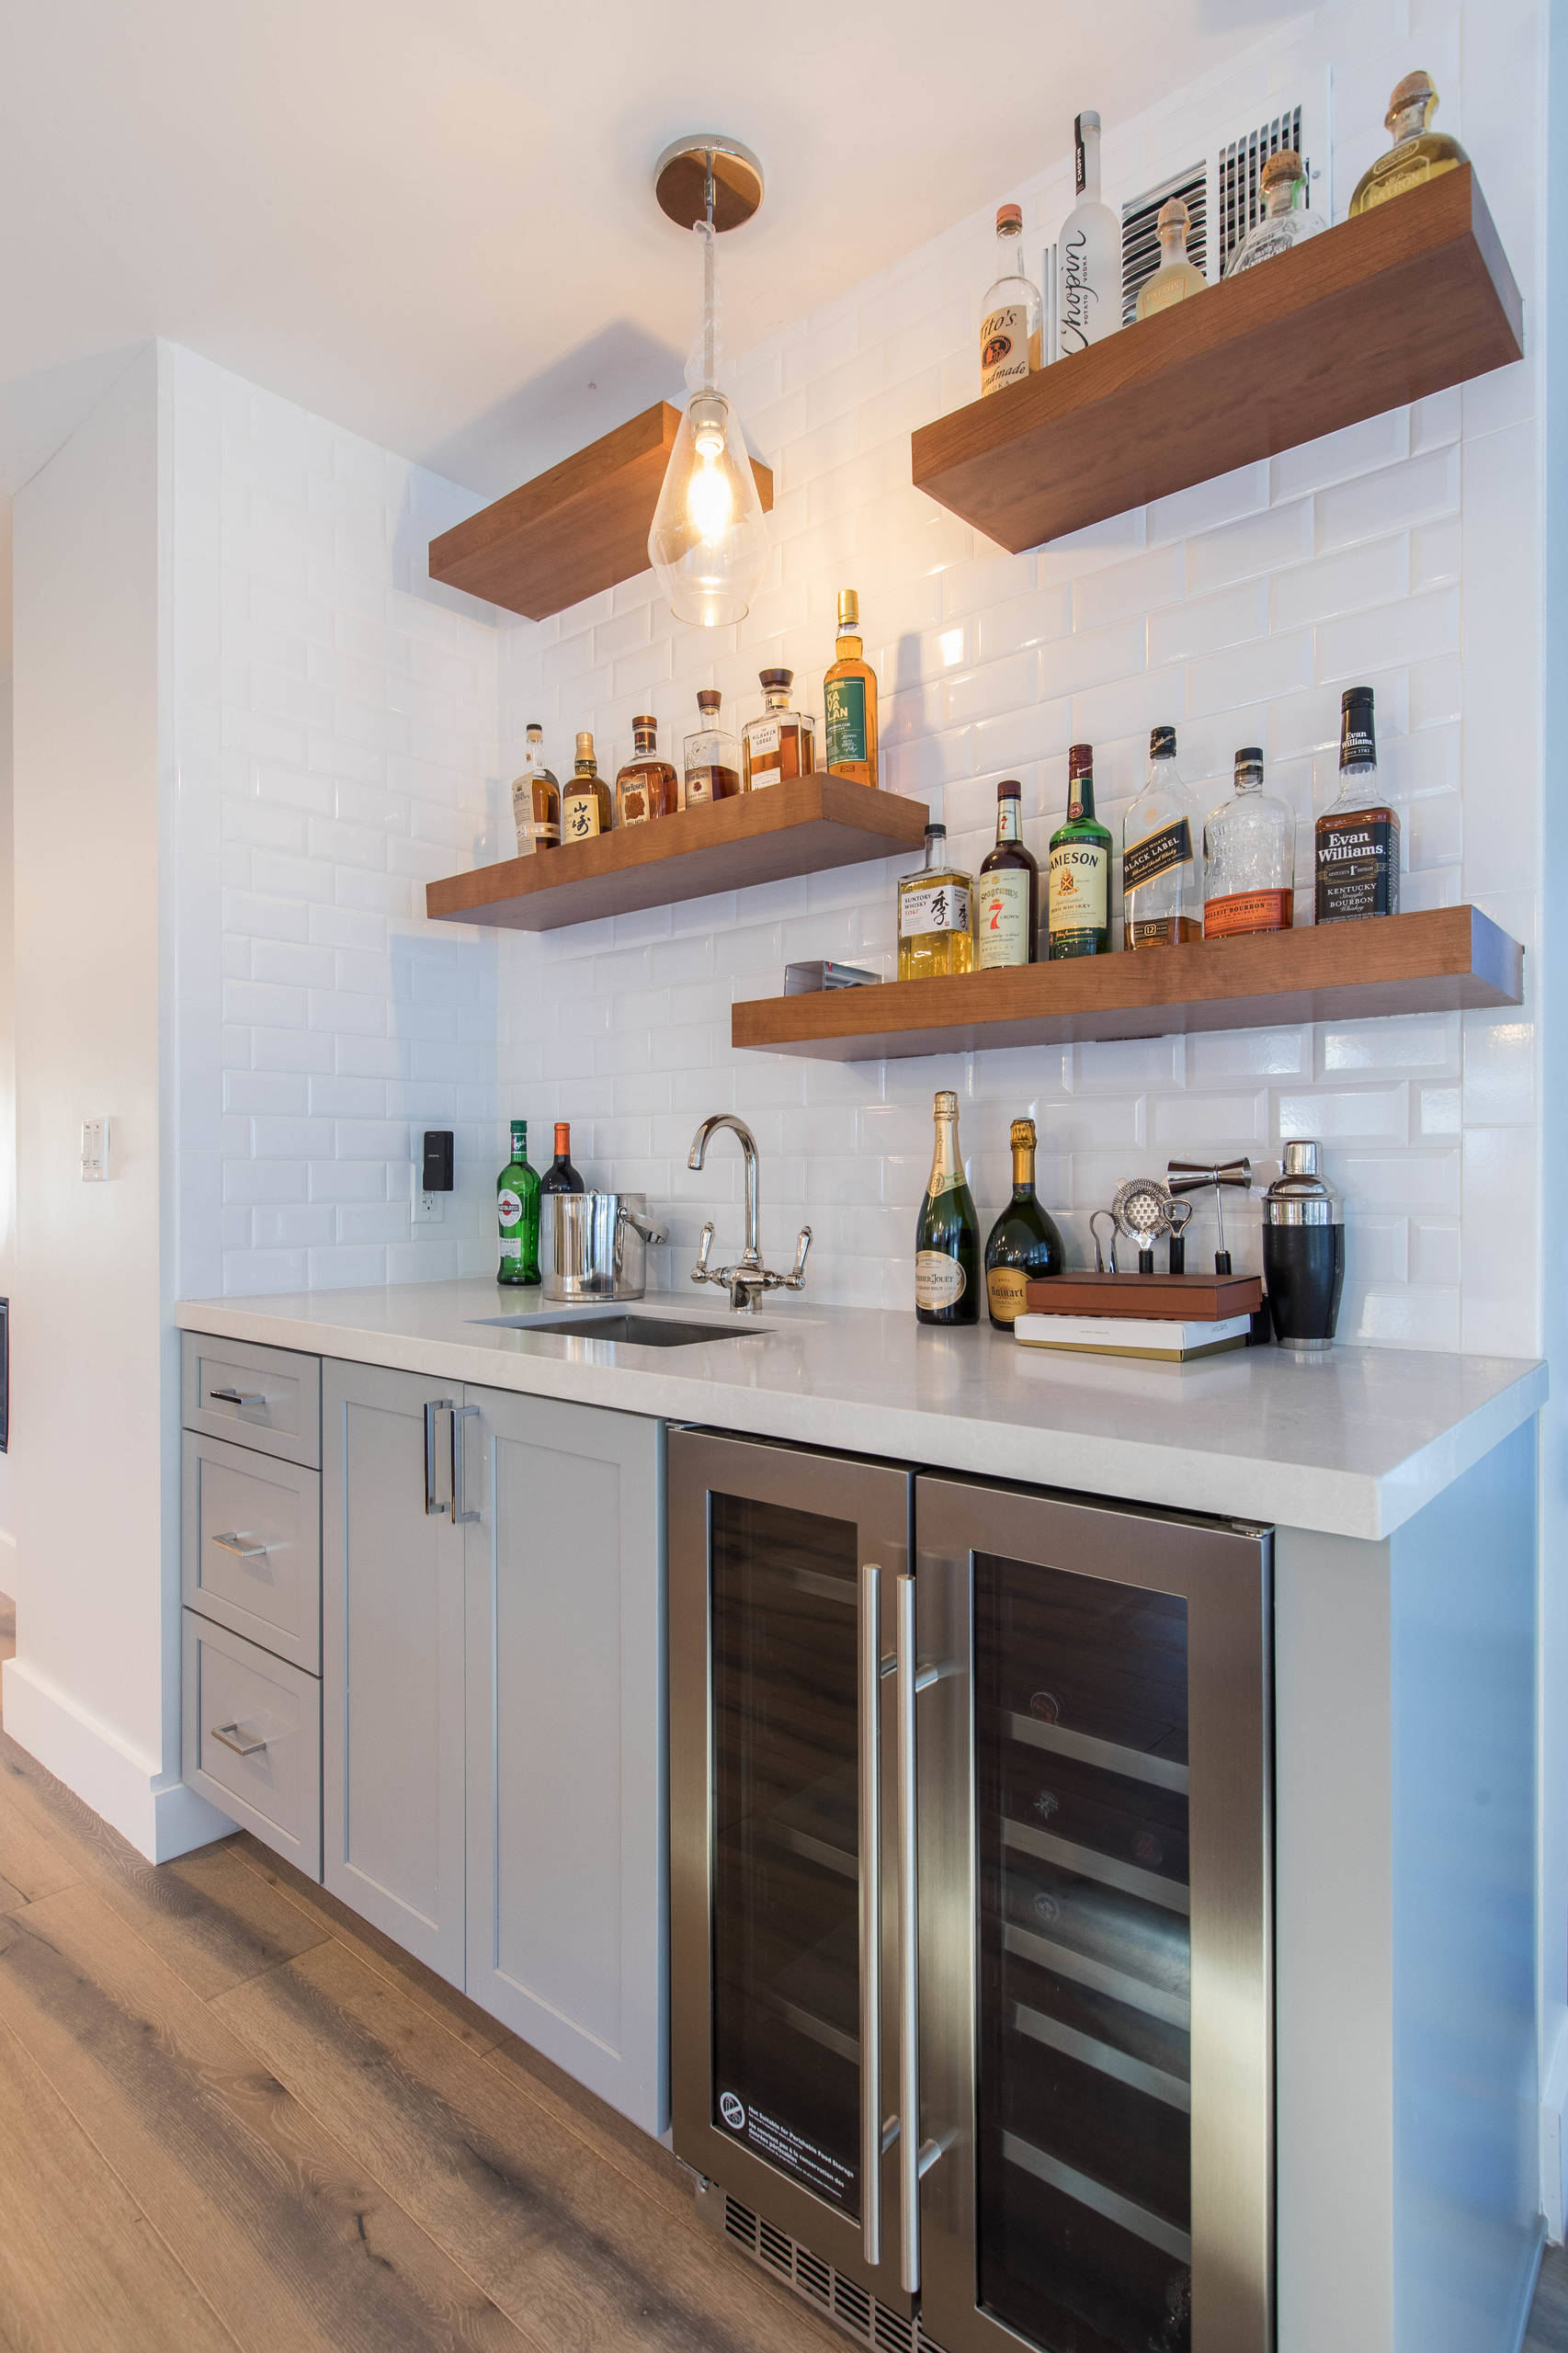 75 Beautiful Small Home Bar Pictures Ideas February 2021 Houzz